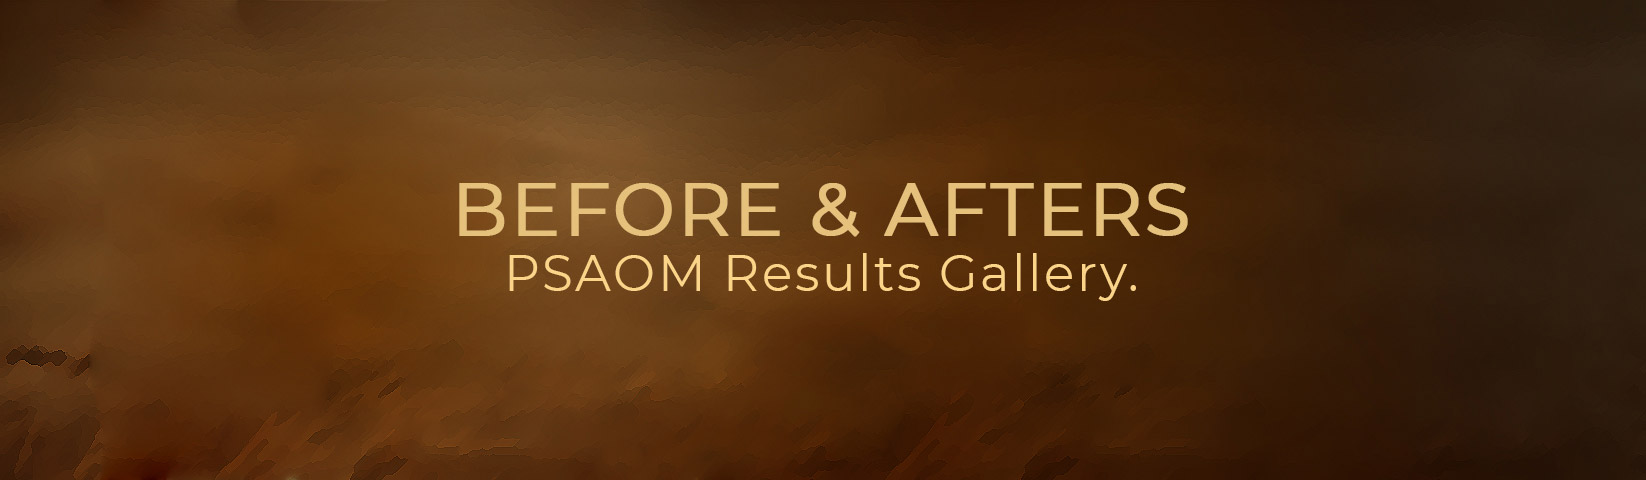 Before & Afters: PSAOM Results Gallery